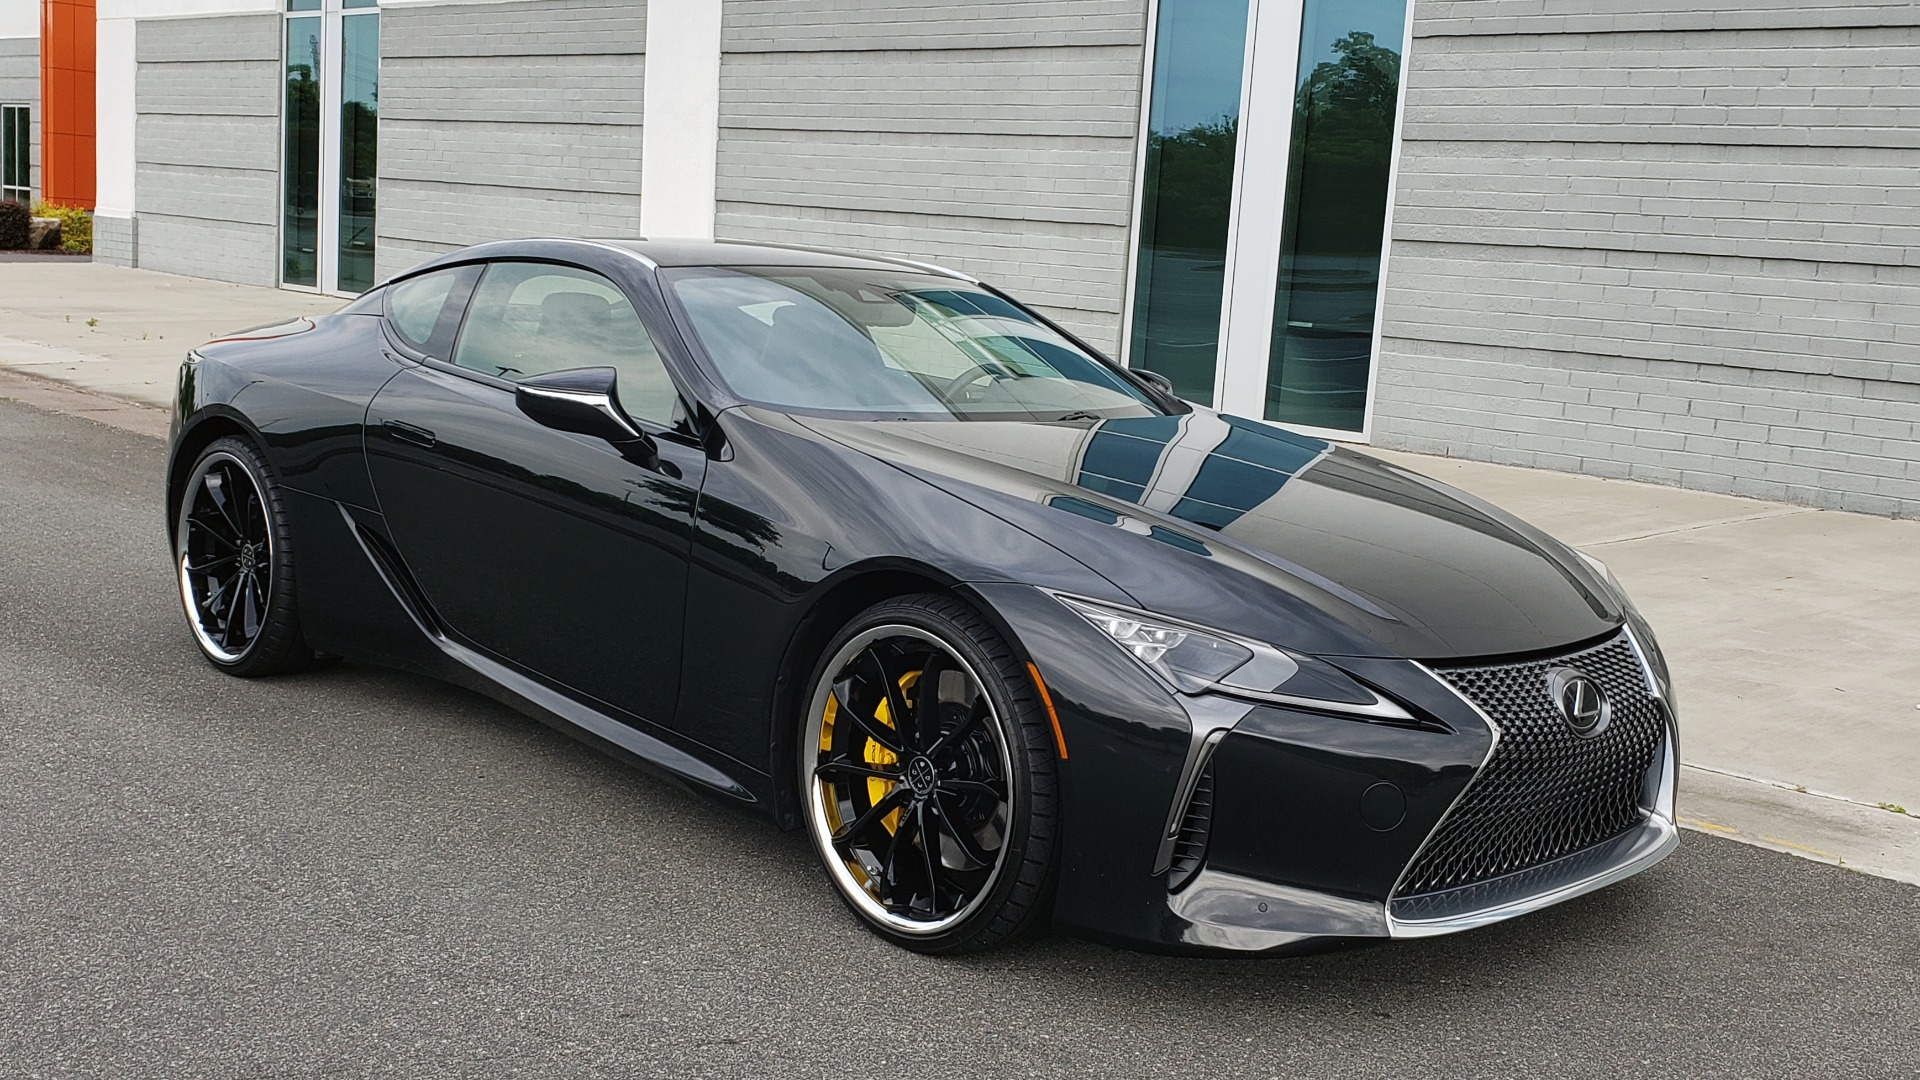 Used 2018 Lexus LC 500 COUPE / 5.0L V8 (471HP) / 10-SPD AUTO / HUD / SUNROOF / REARVIEW for sale Sold at Formula Imports in Charlotte NC 28227 9